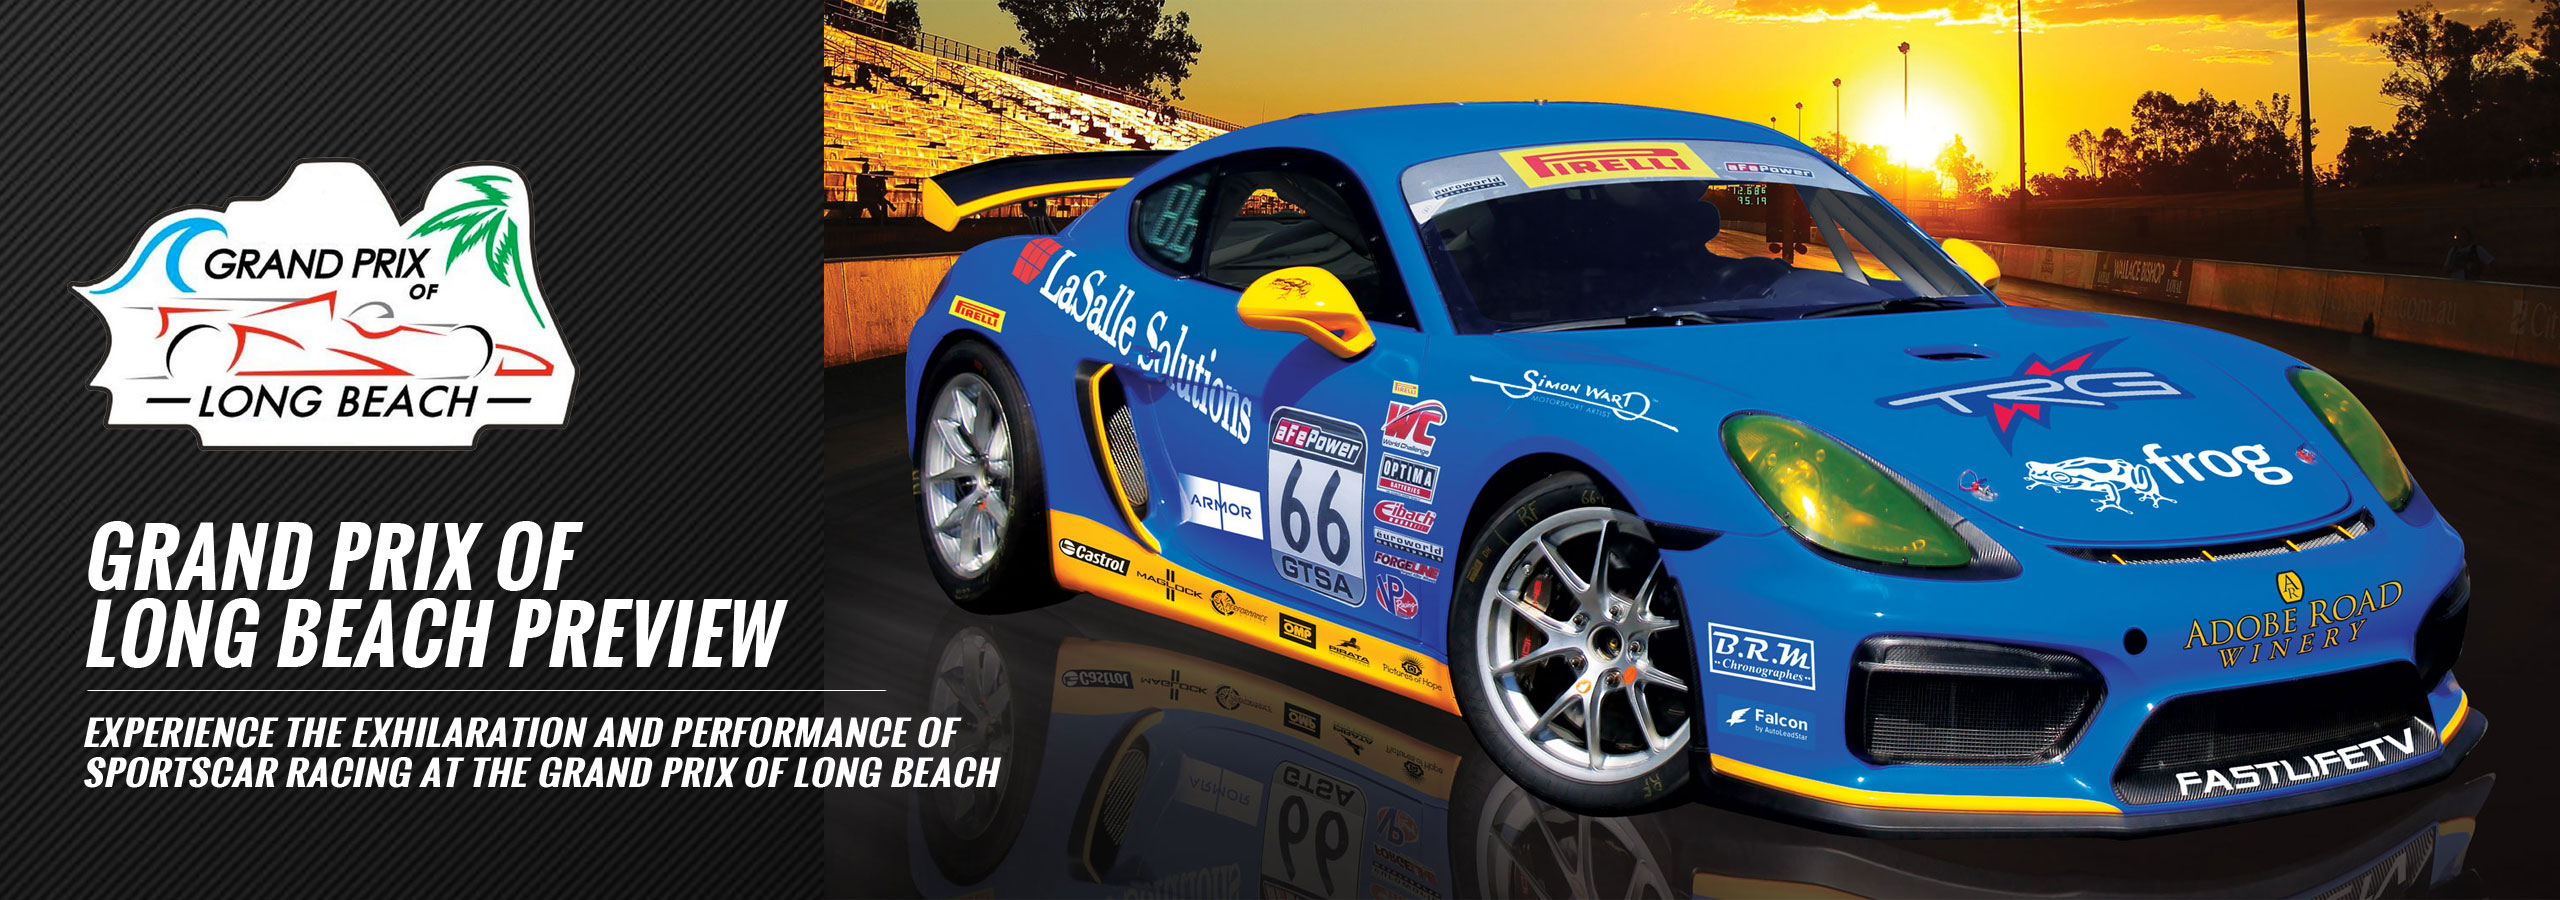 Experience the Exhilaration and Performance of Sportscar Racing at the Grand Prix of Long Beach